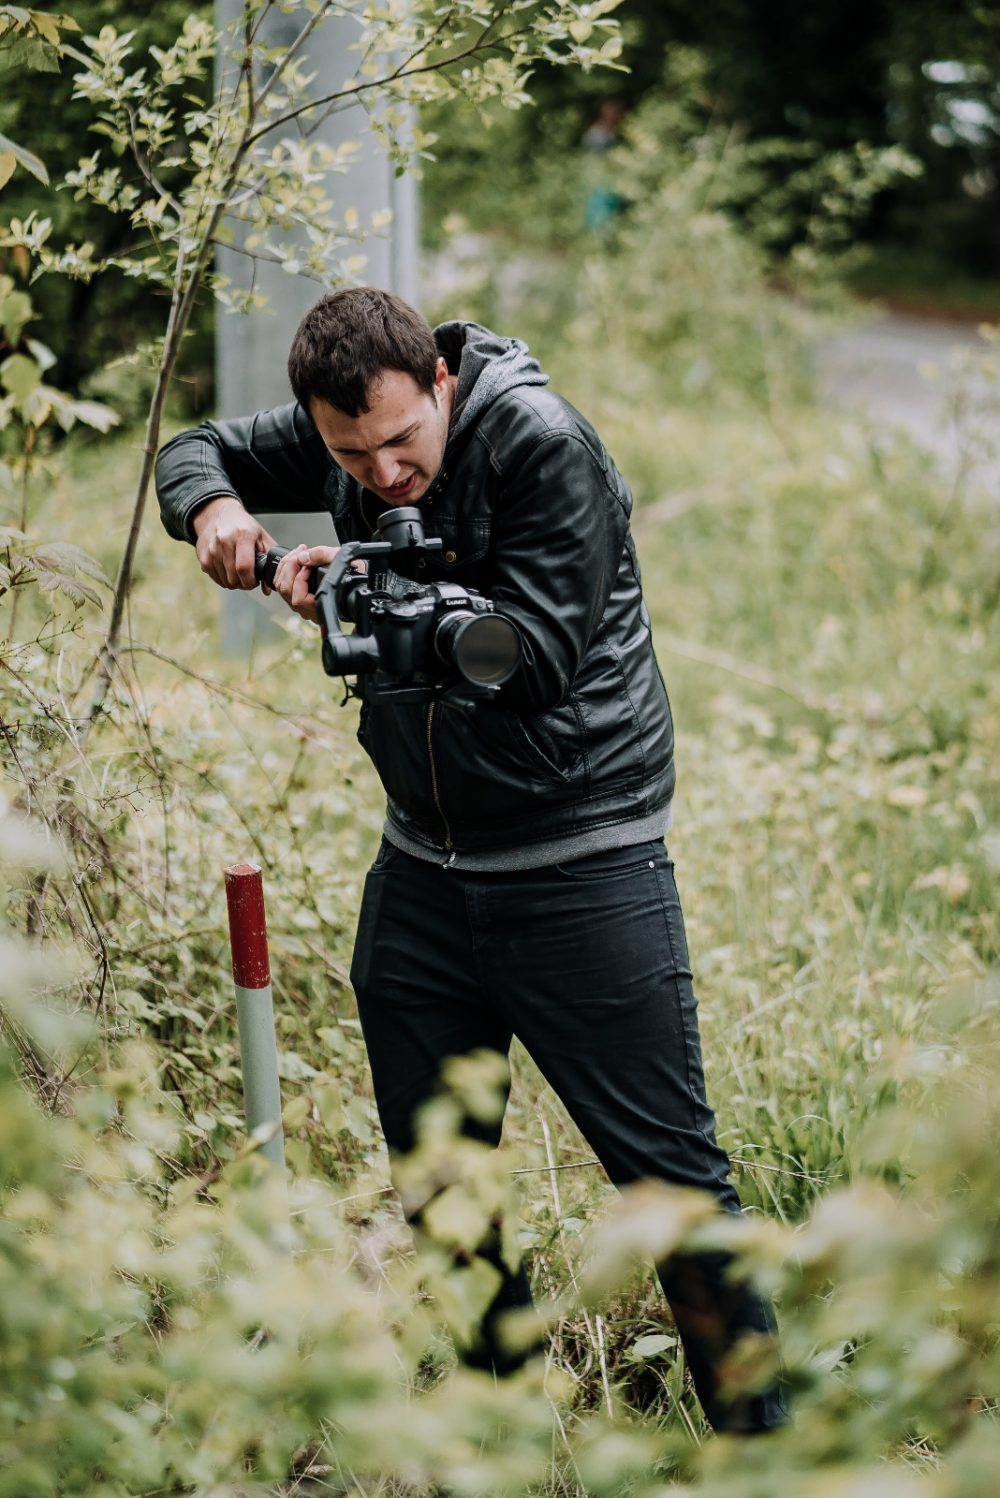 Roland Klocker - Behind the Scenes on Set with Camera and Gimbal